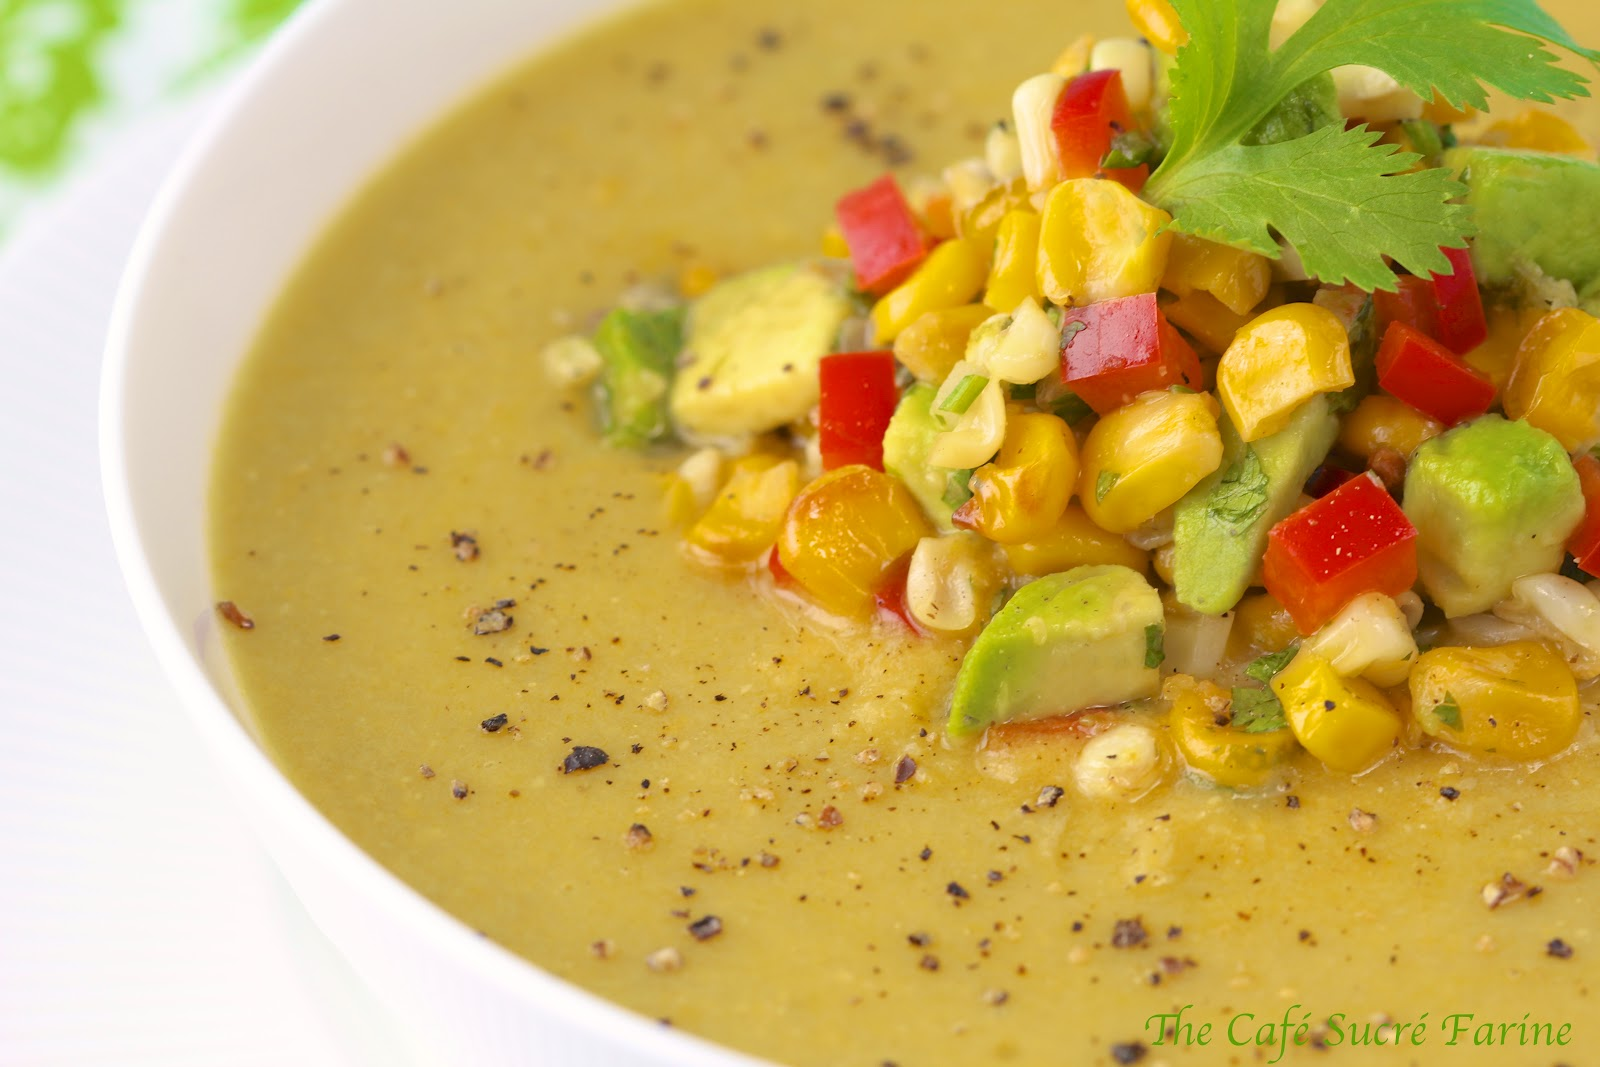 Fresh Corn Soup w/ Roasted Corn/Avocado Salsa | The Café Sucre Farine